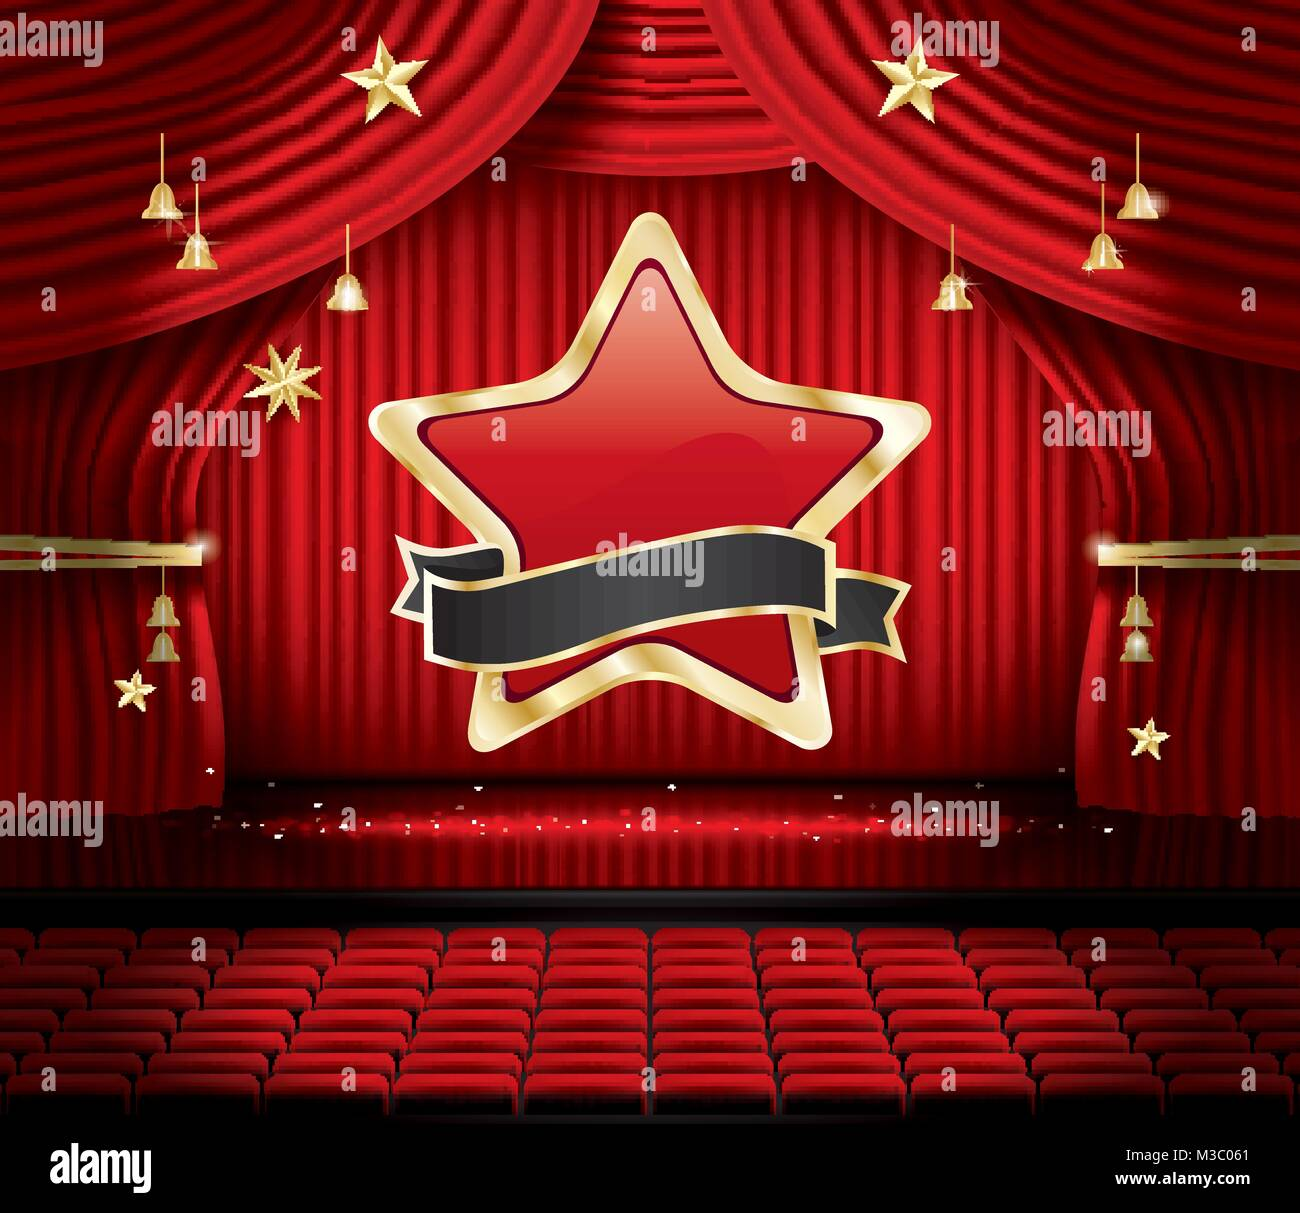 Red Stage Curtain With Star Seats And Copy Space Vector